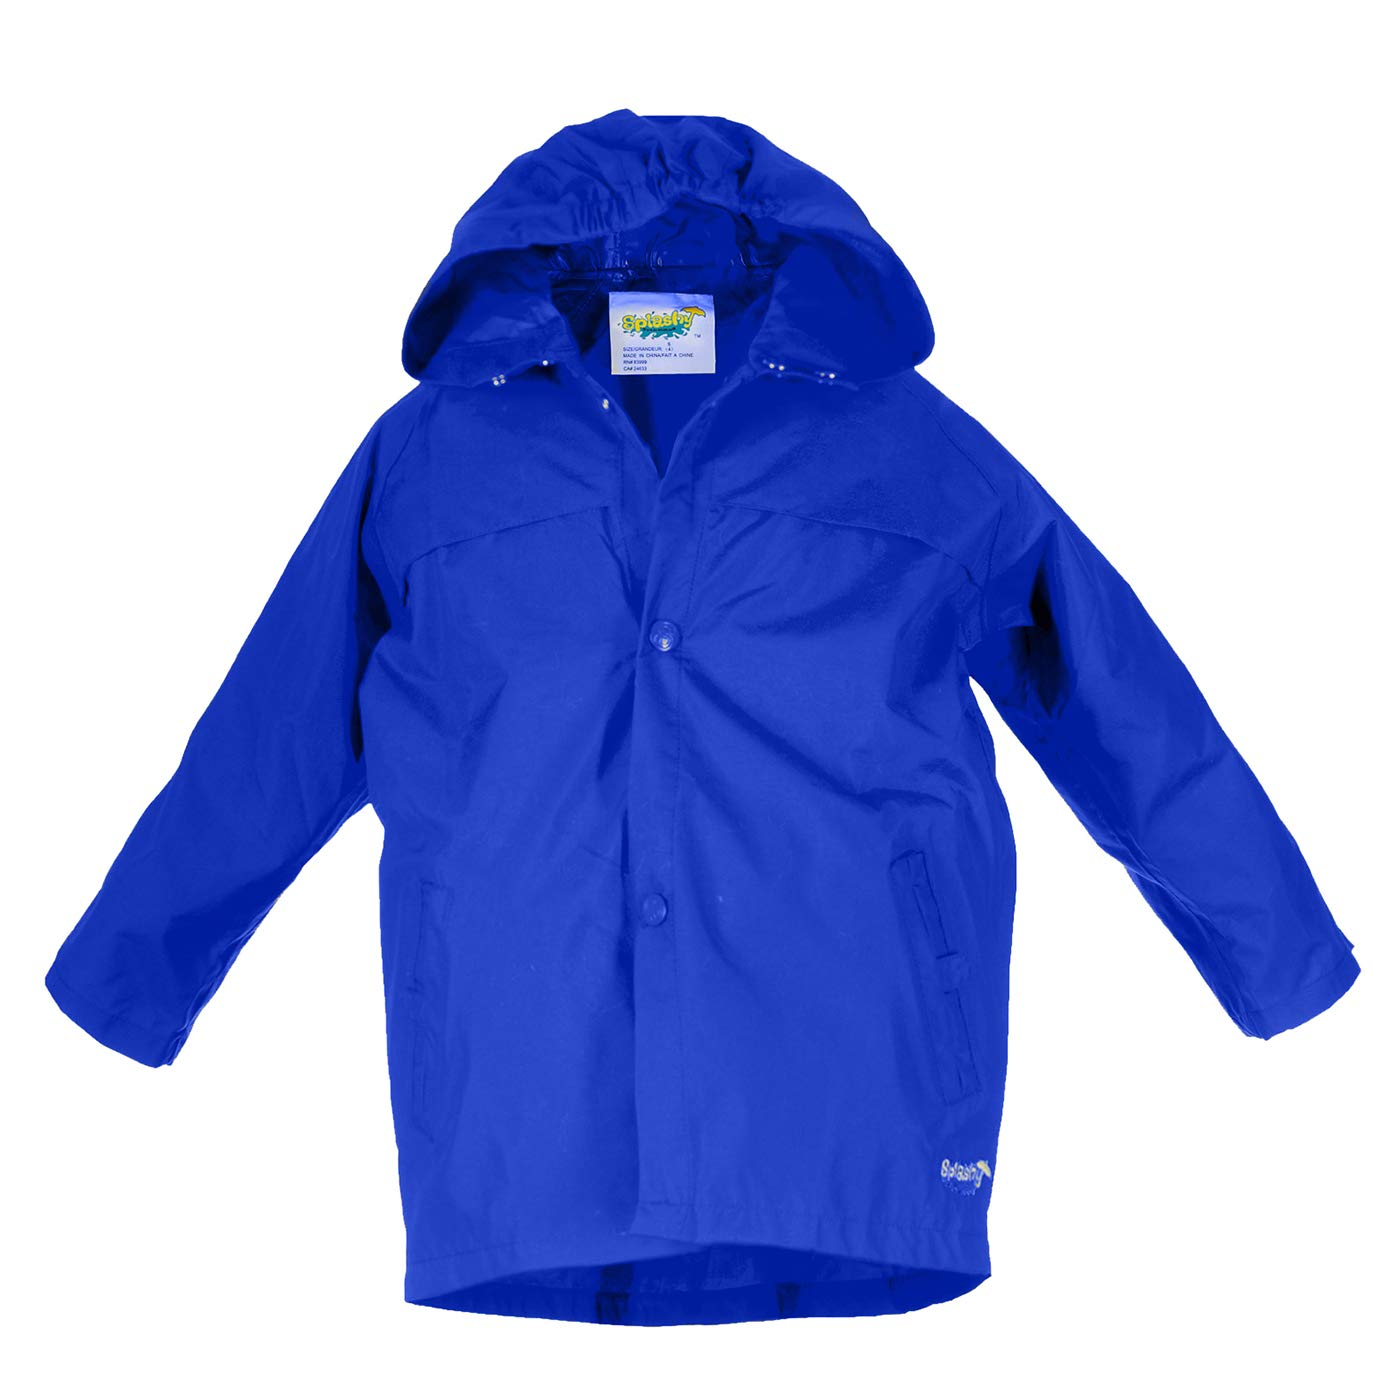 Splashy Nylon Children's Rain Jacket (6X/7, Royal Blue)